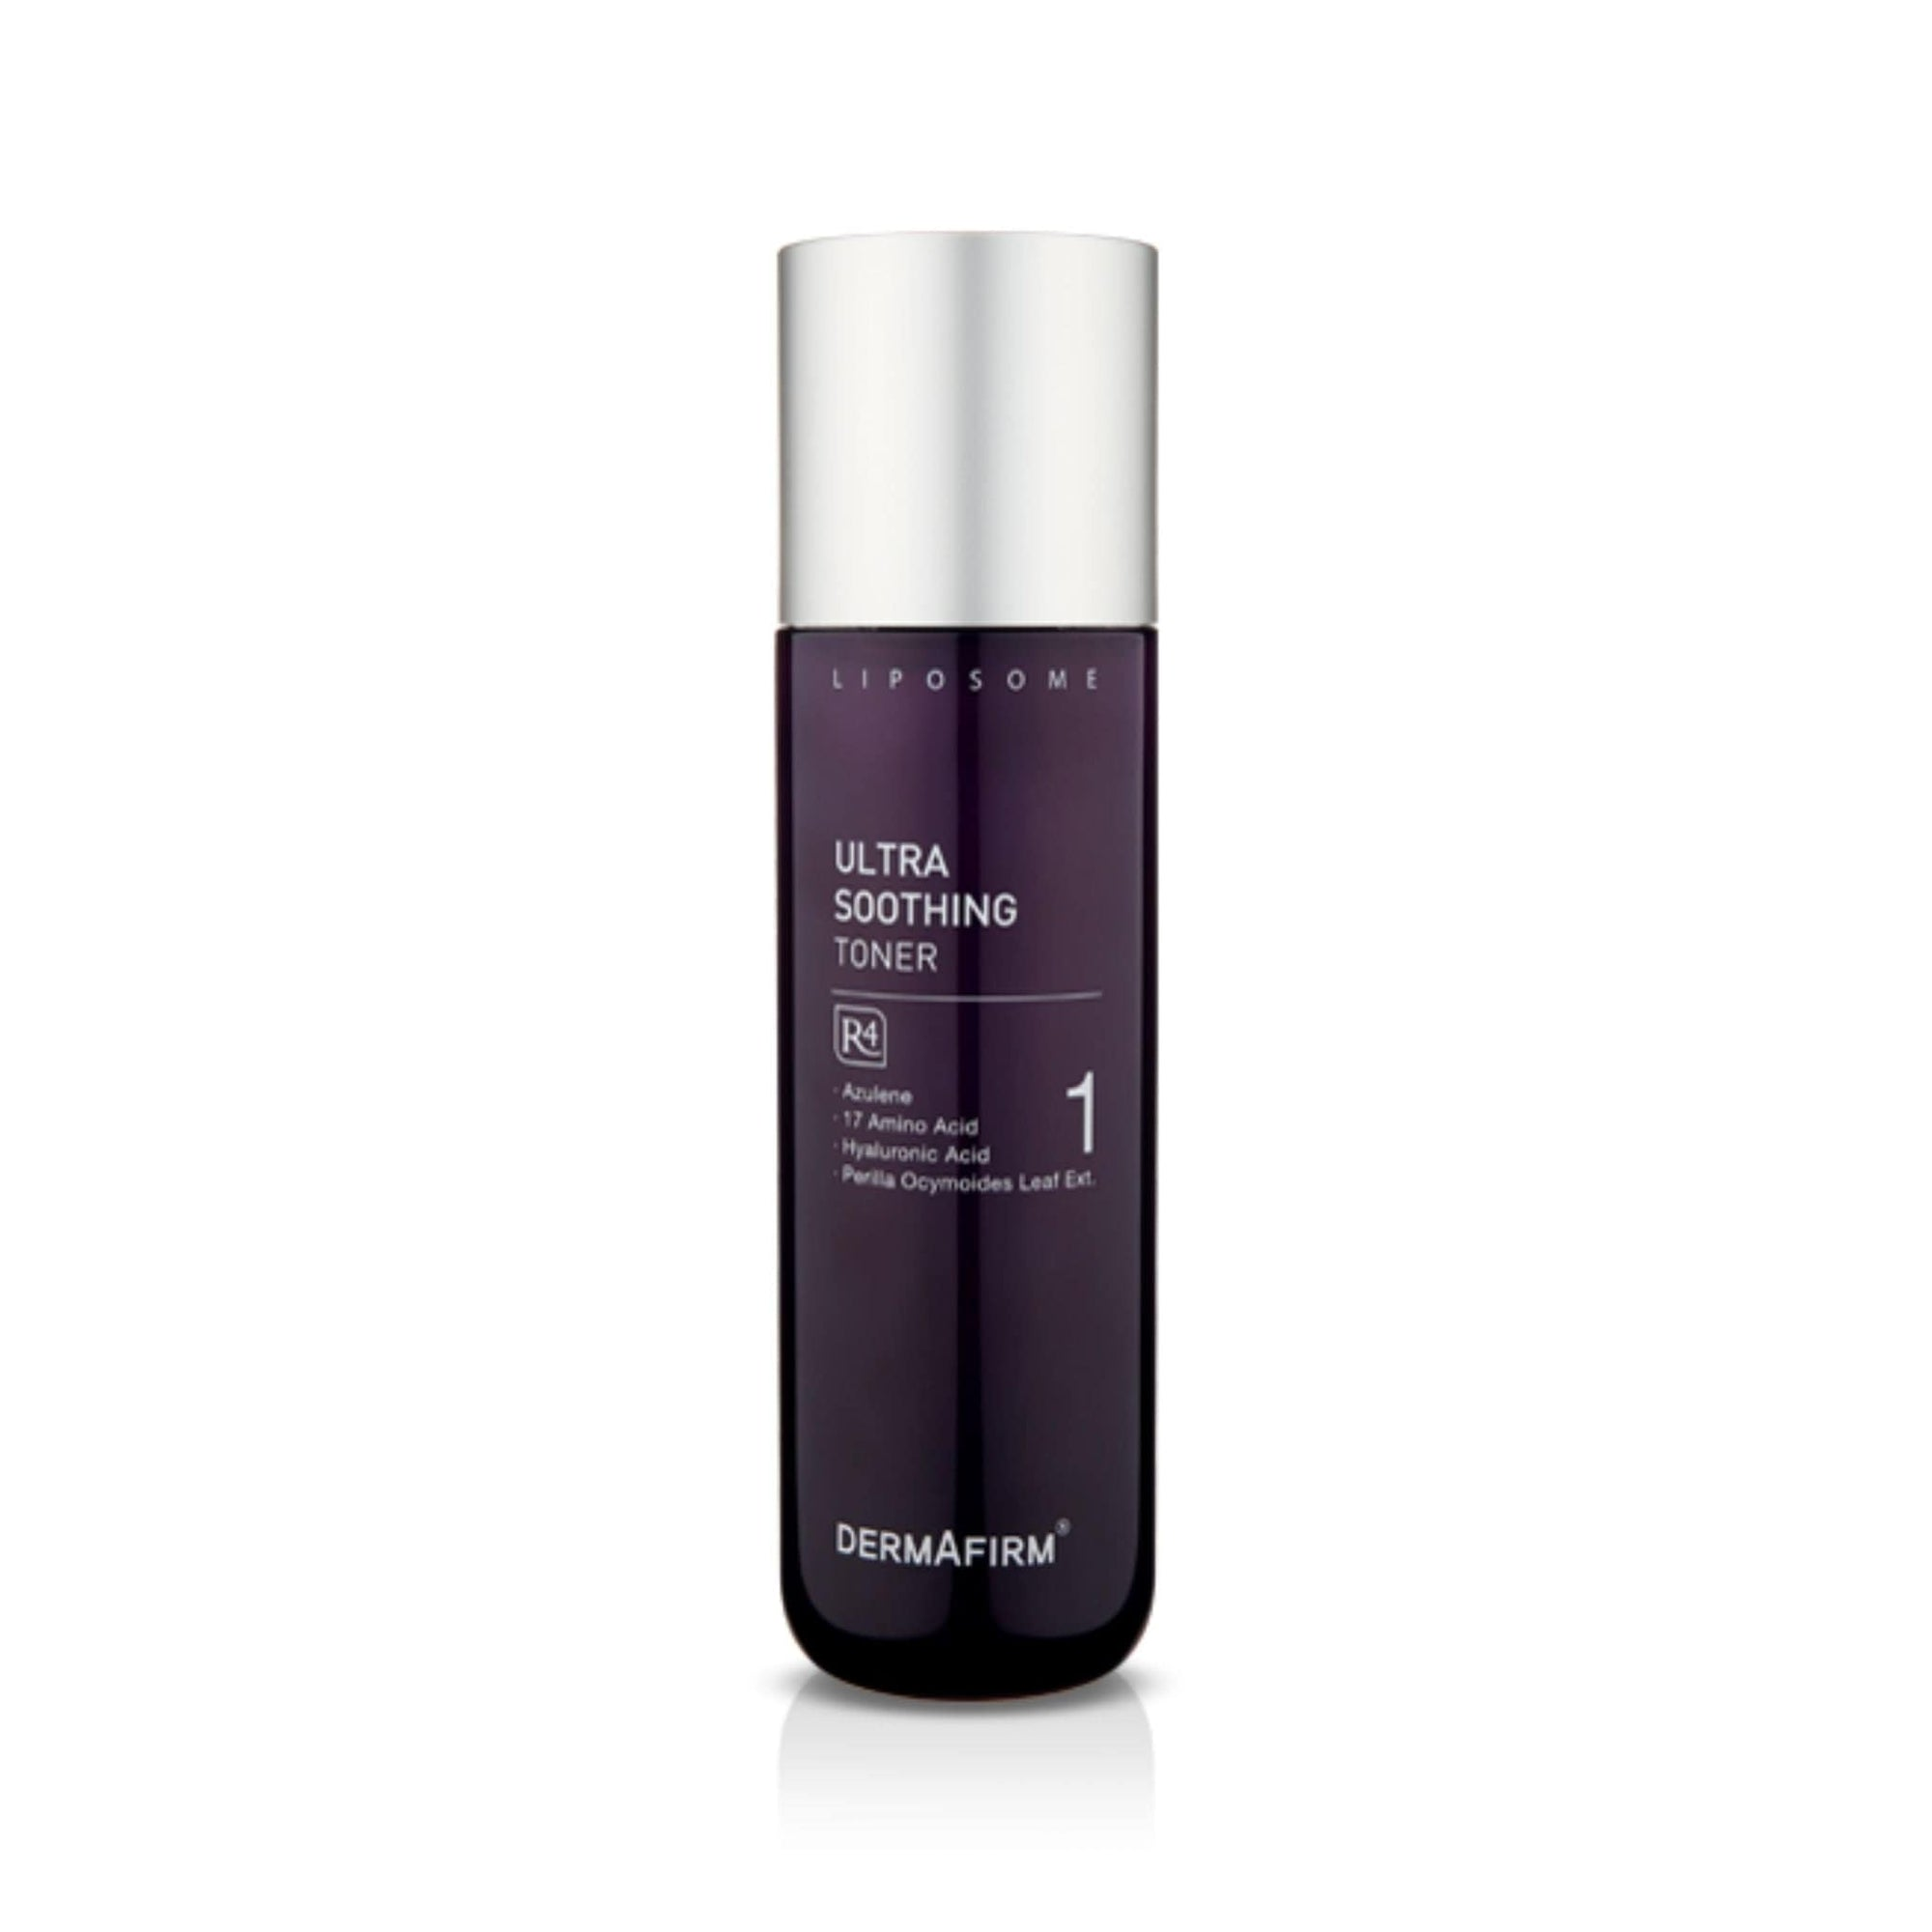 Ultra Soothing Toner R4 - 200ml